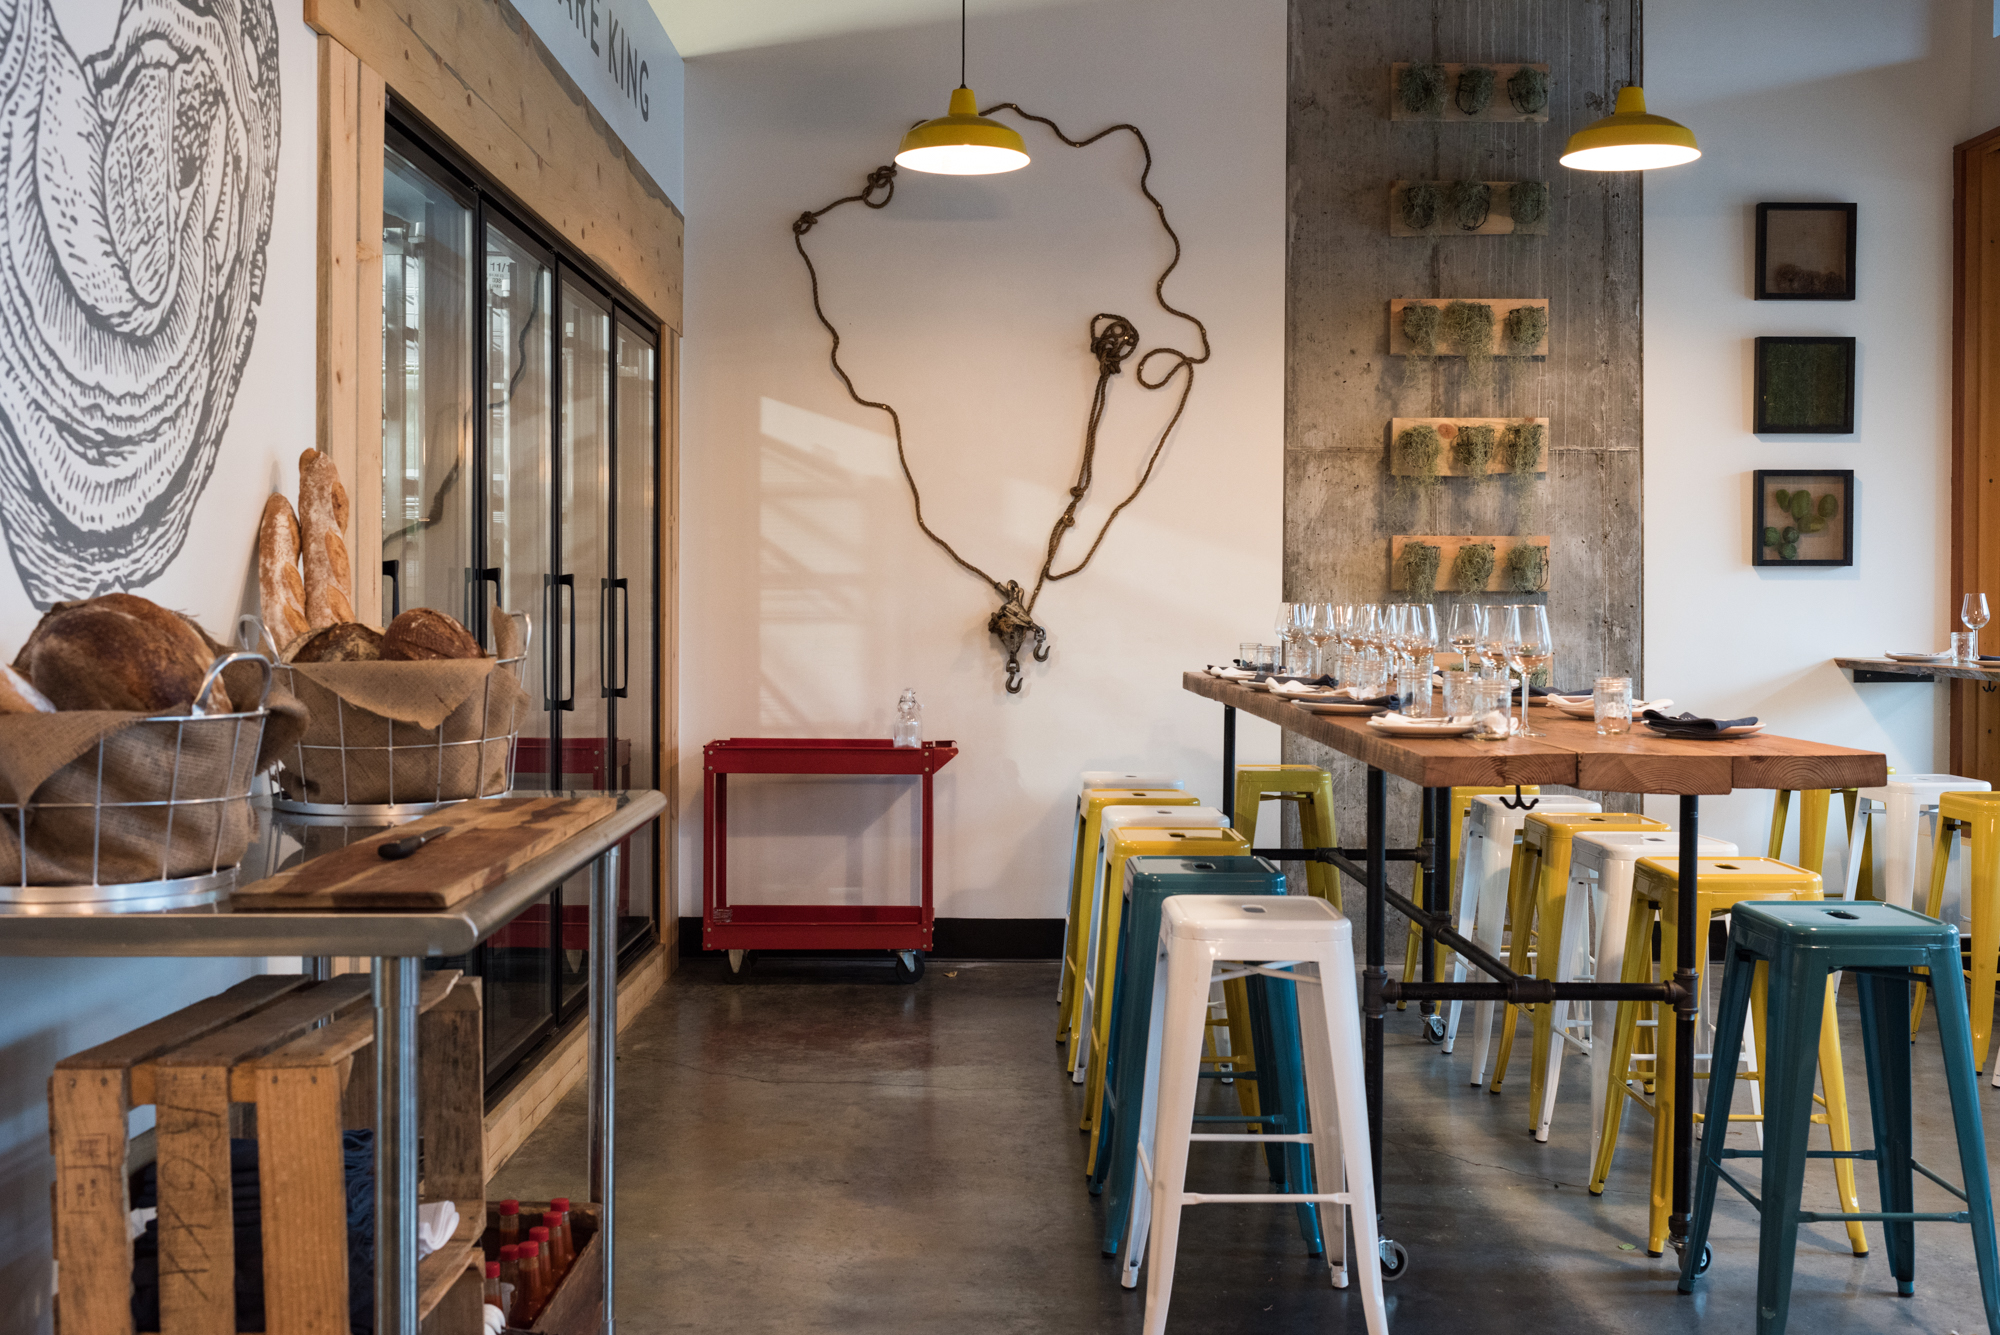 Olympia Oyster Bar Opens Tonight on N Mississippi, Menu Revealed